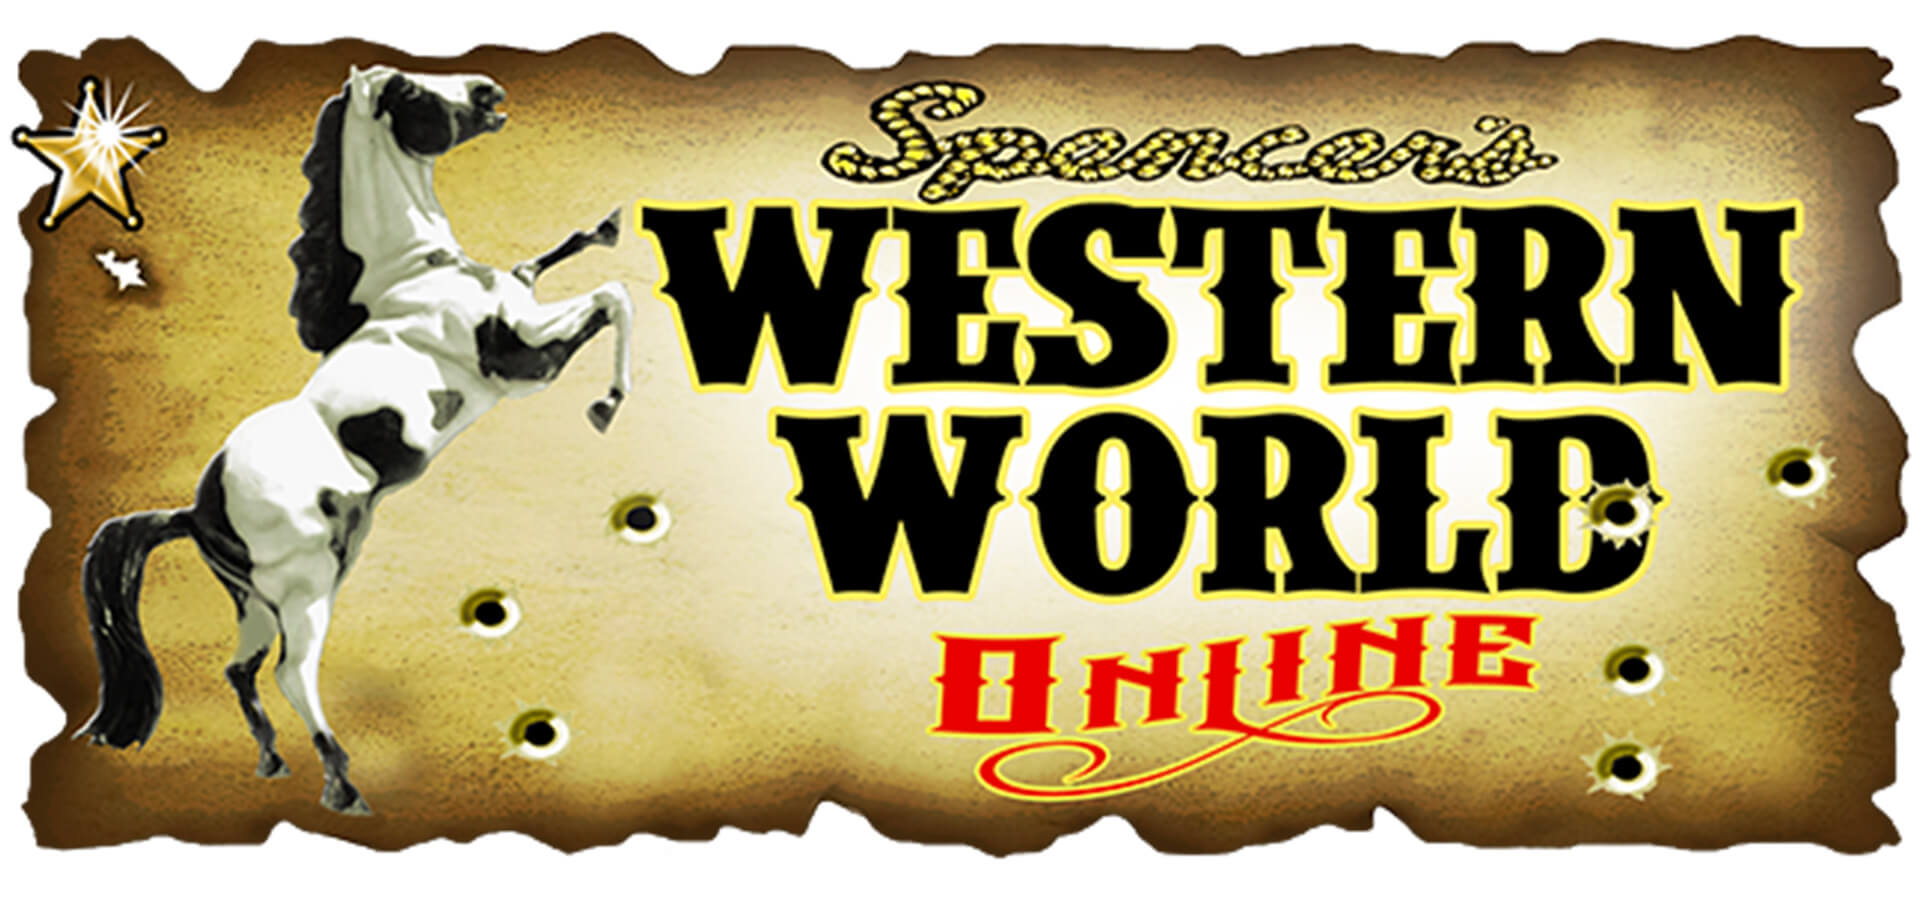 Spencer's Western World